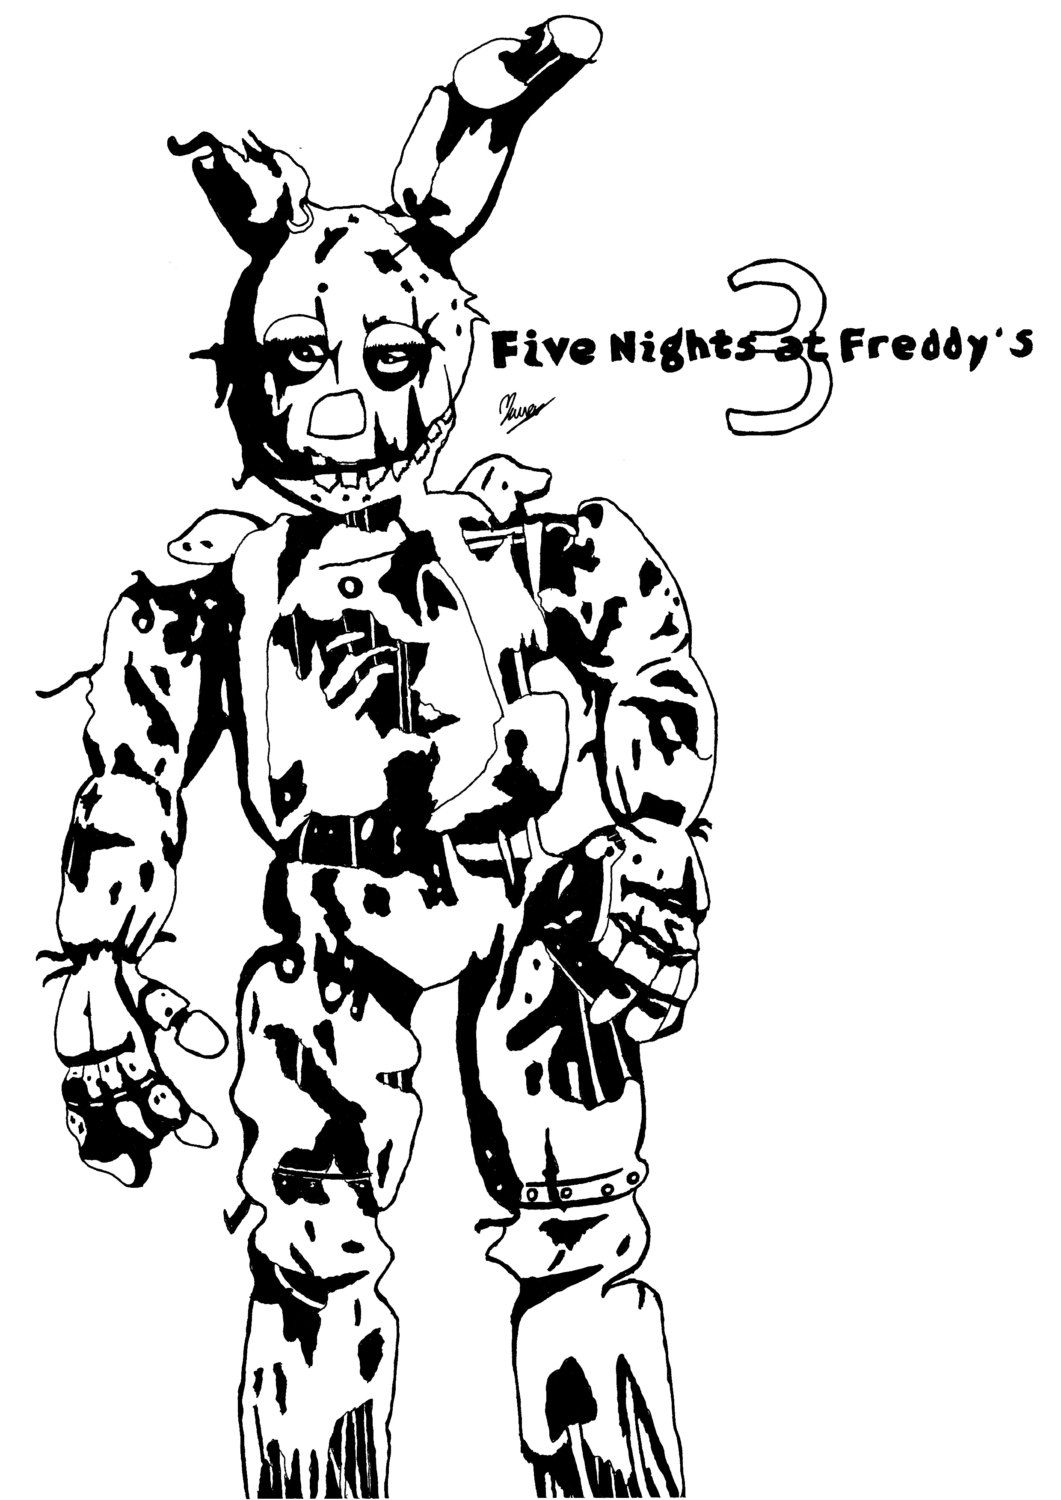 springtrap coloring pages Spring Trap Coloring Pages Further Further | Free Download  springtrap coloring pages